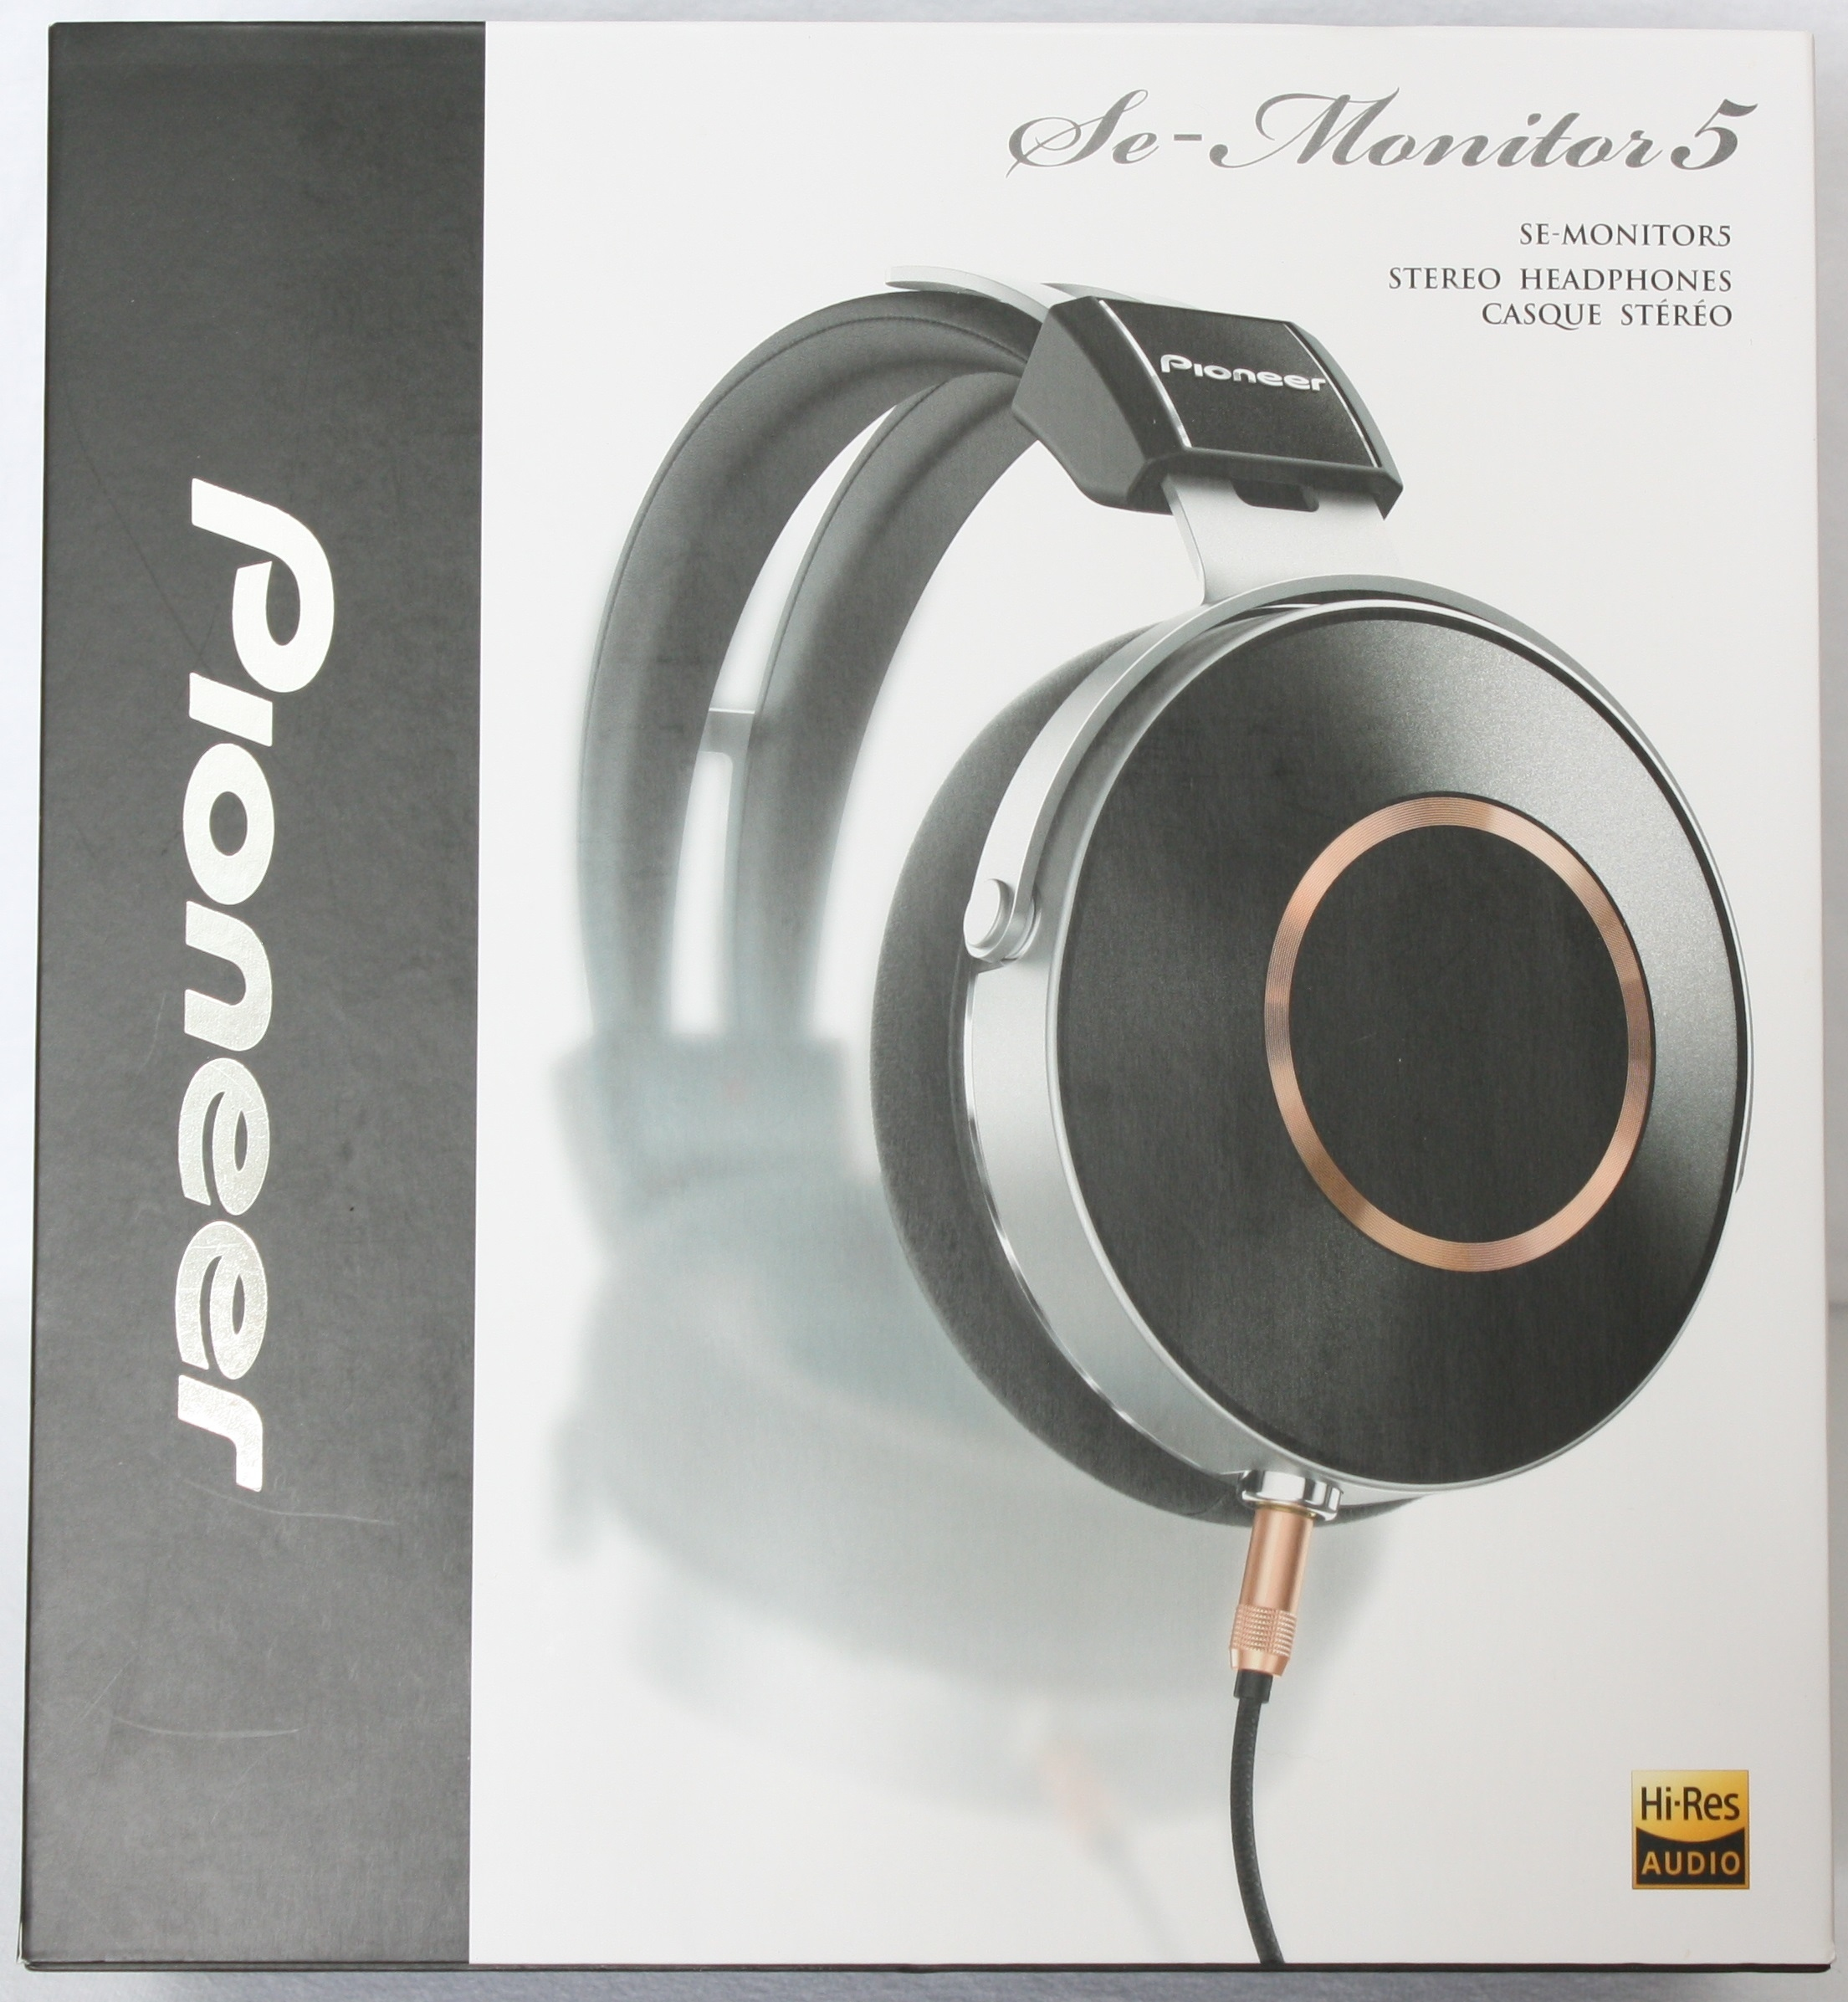 Pioneer Monitor 5 Headphones